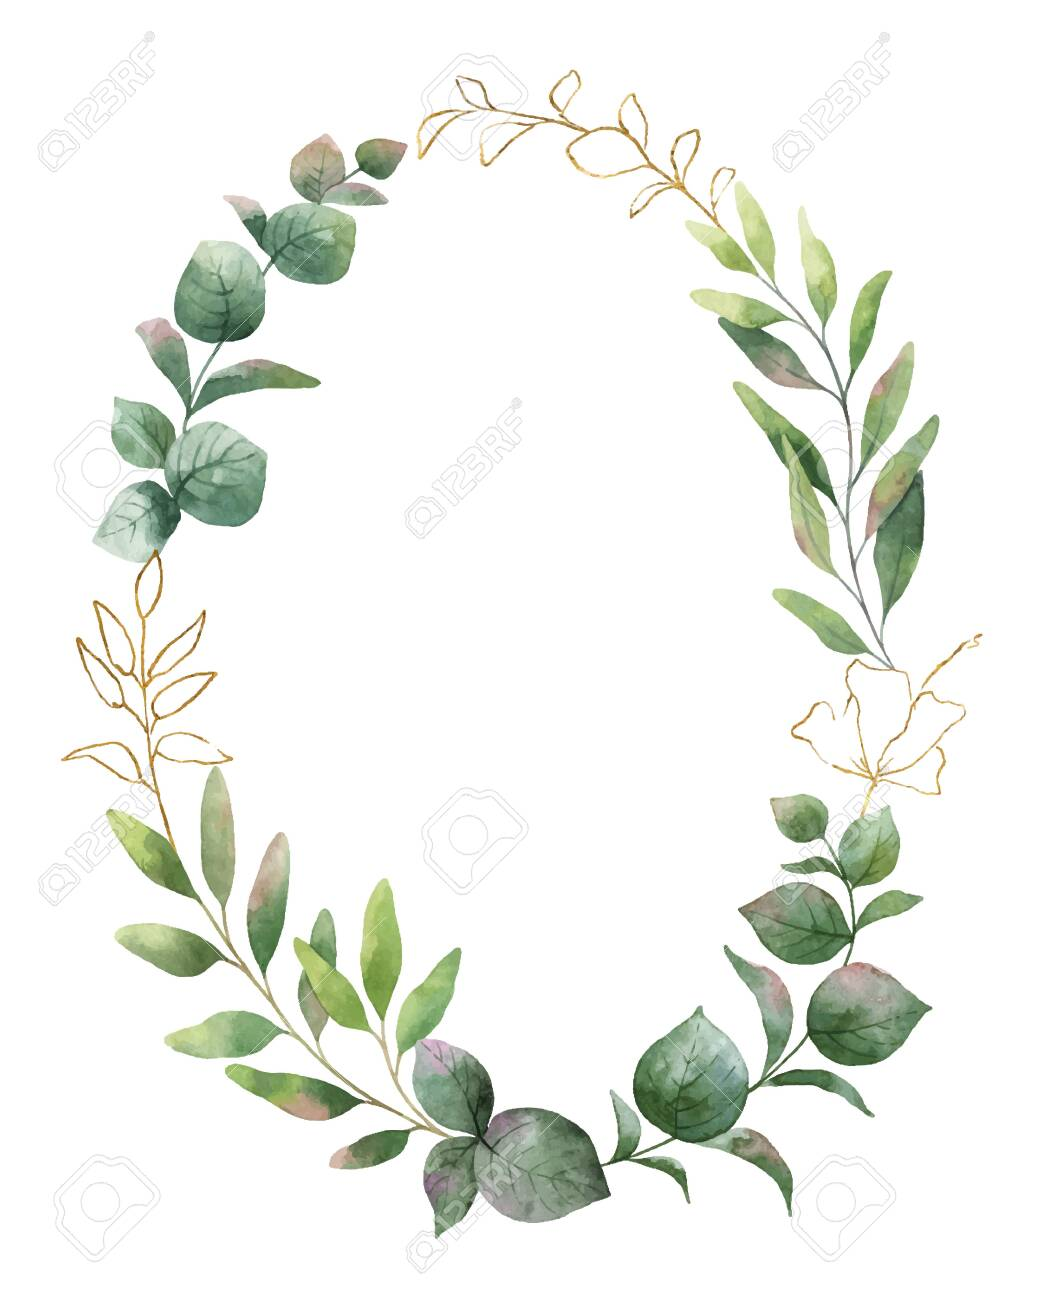 Watercolor wreath with green eucalyptus leaves and flower - 121574645